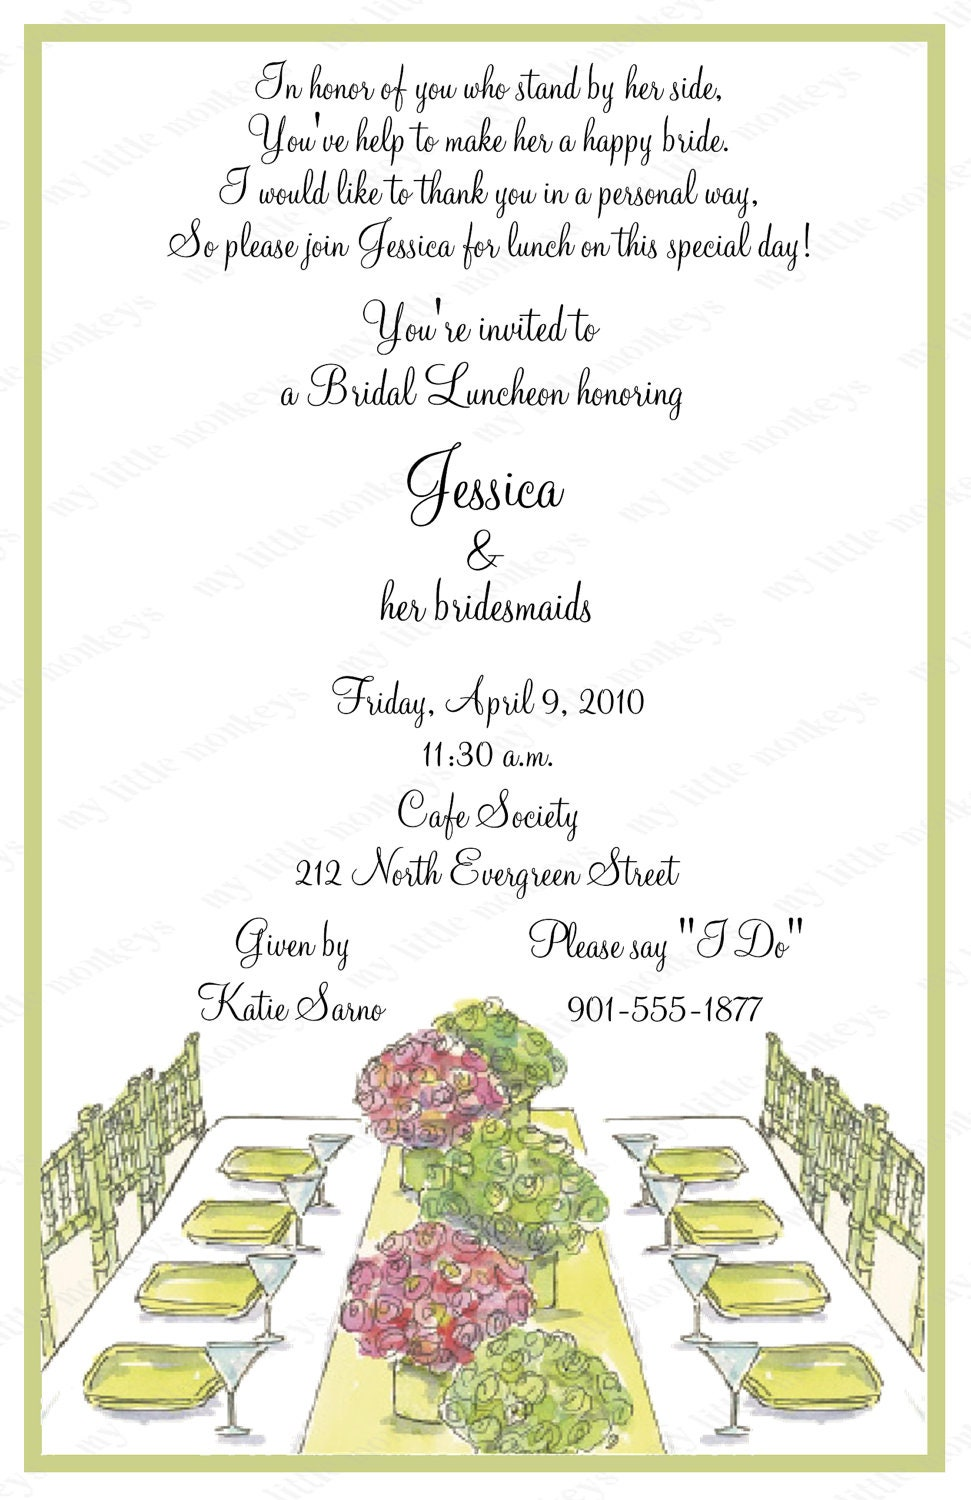 10 bridal luncheon invitations with envelopes free return for Wedding brunch invitations